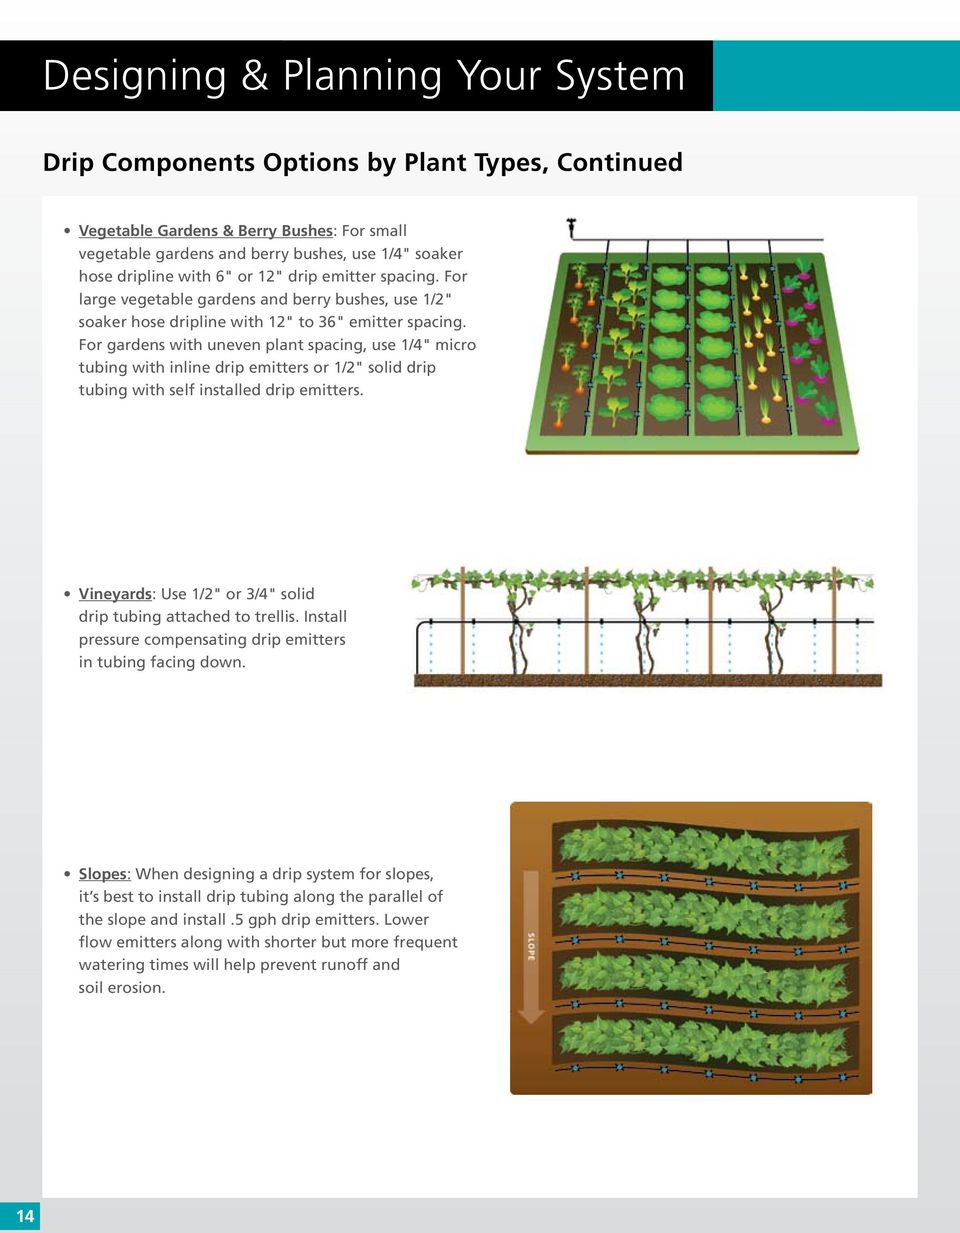 Drip Irrigation  Design Guide  - PDF